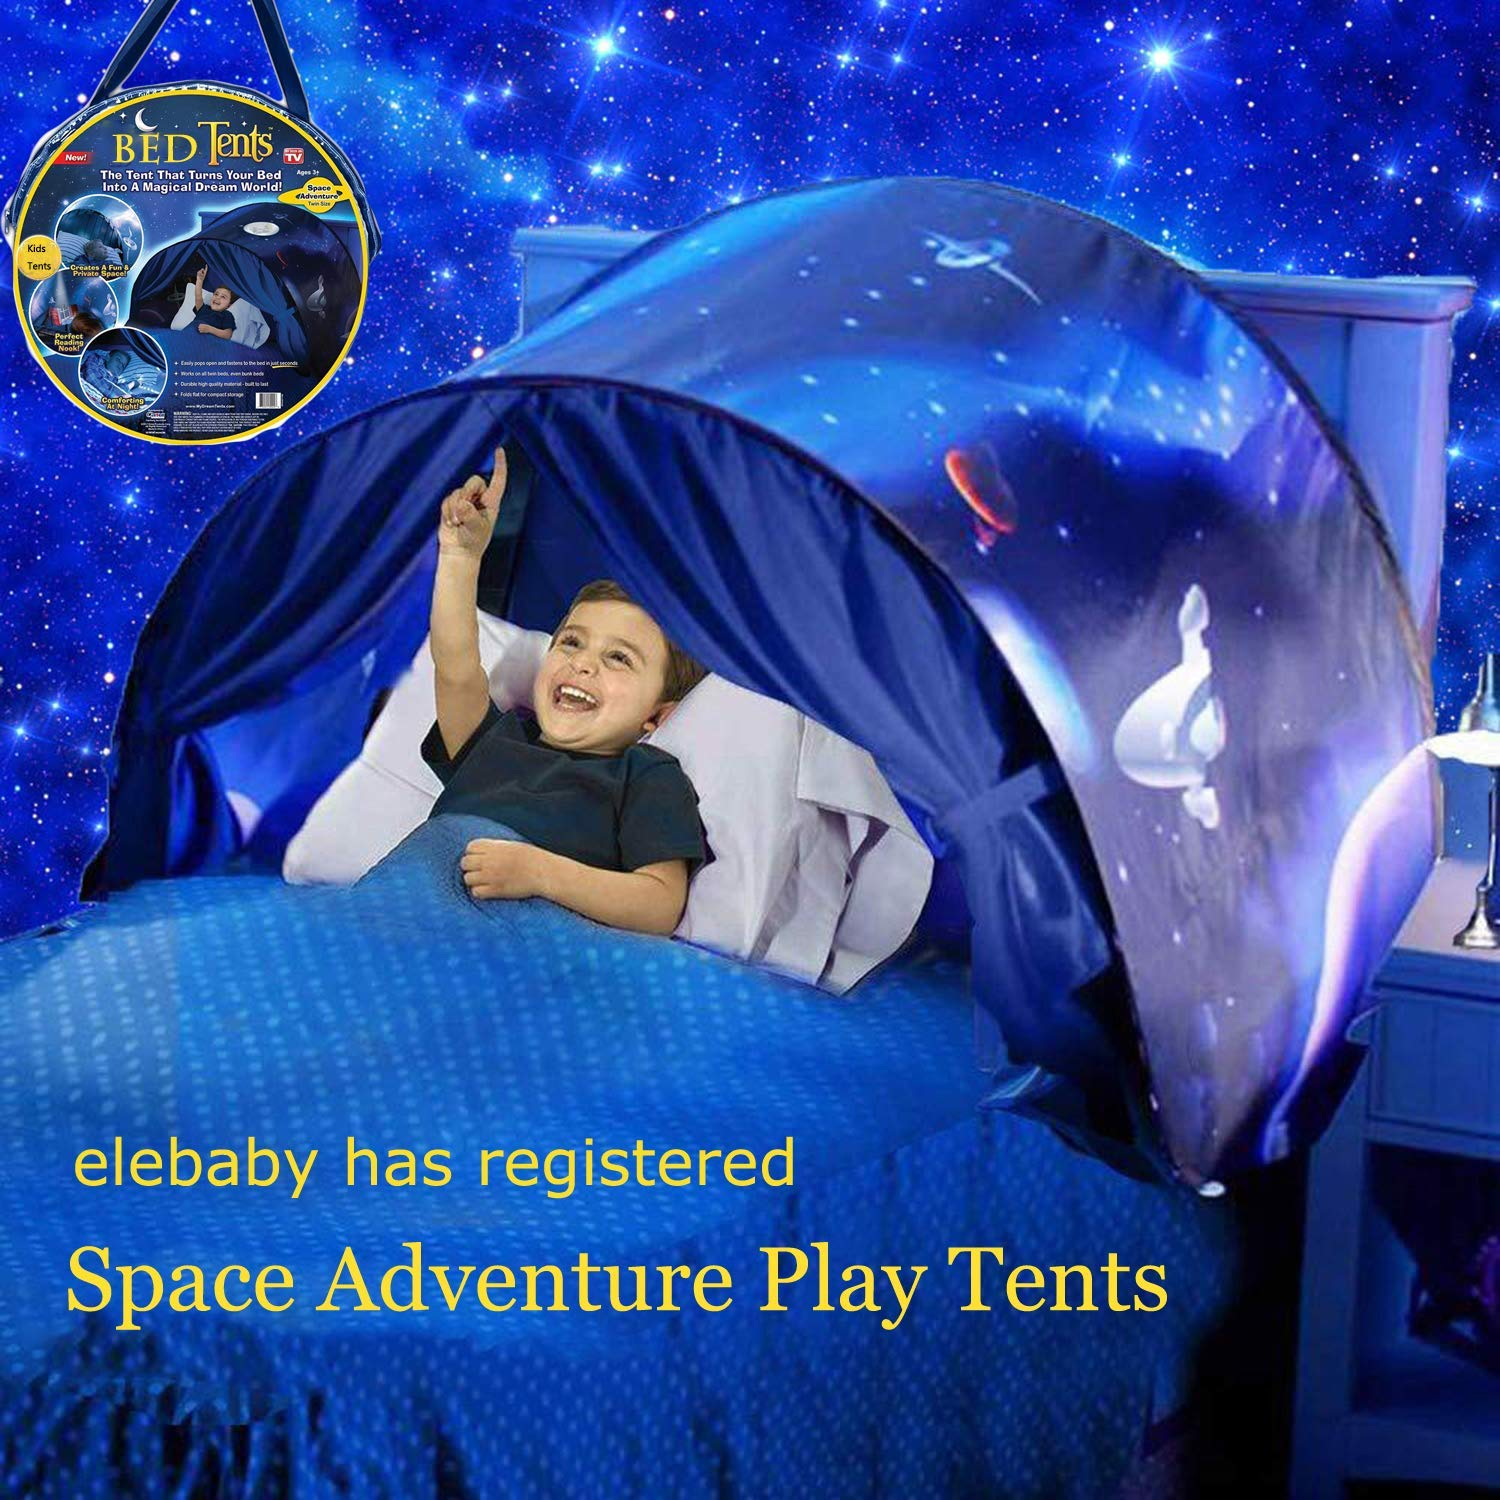 elebaby Deluxe Kids Bed Tent Dinosaur Island Funny Play Tent Pop-up Tent Indoor Foldable Playhouse Bedroom Decoration with GIFT Drawstring Bag